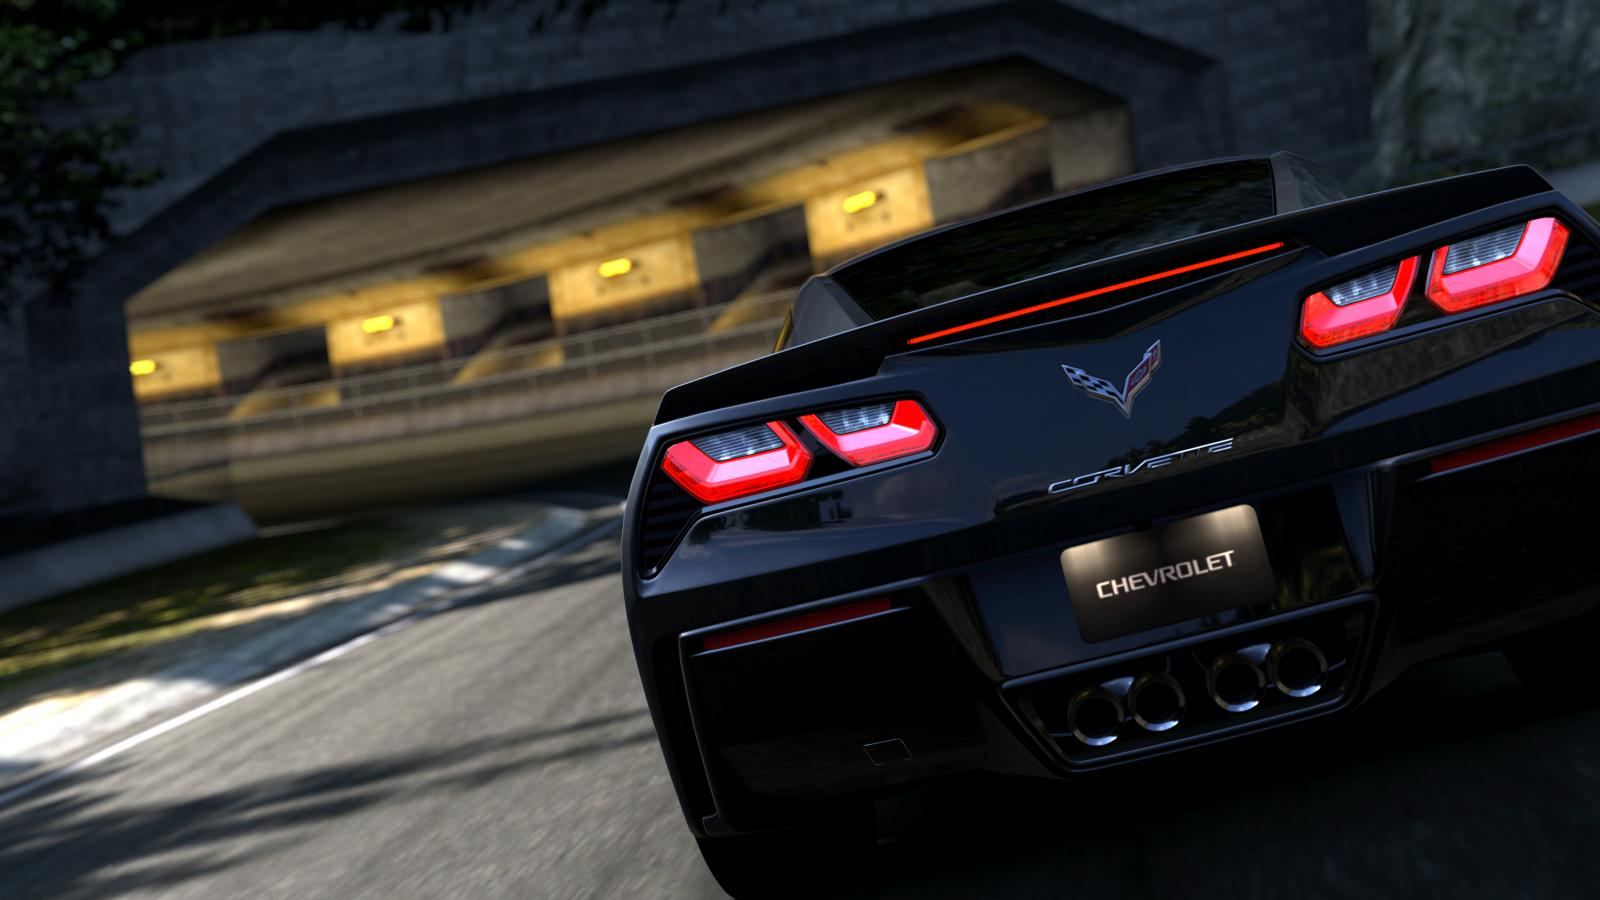 Gran Turismo 5 Chevrolet Corvette Stingray Wallpaper   HD 1600x900